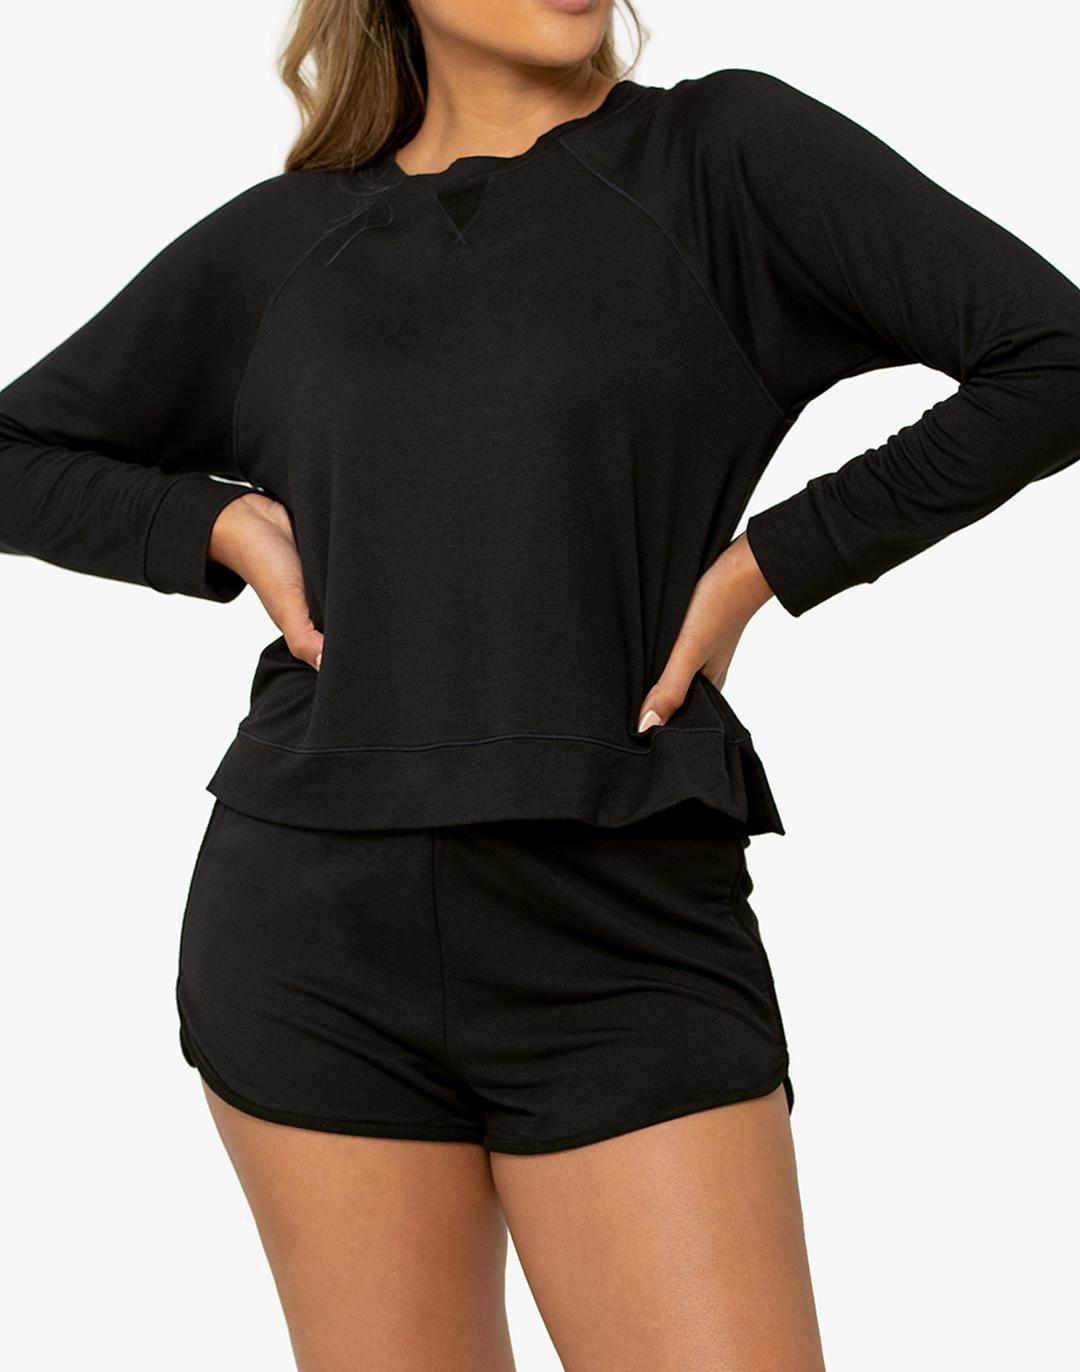 LIVELY The Terry-Soft Sweatshirt